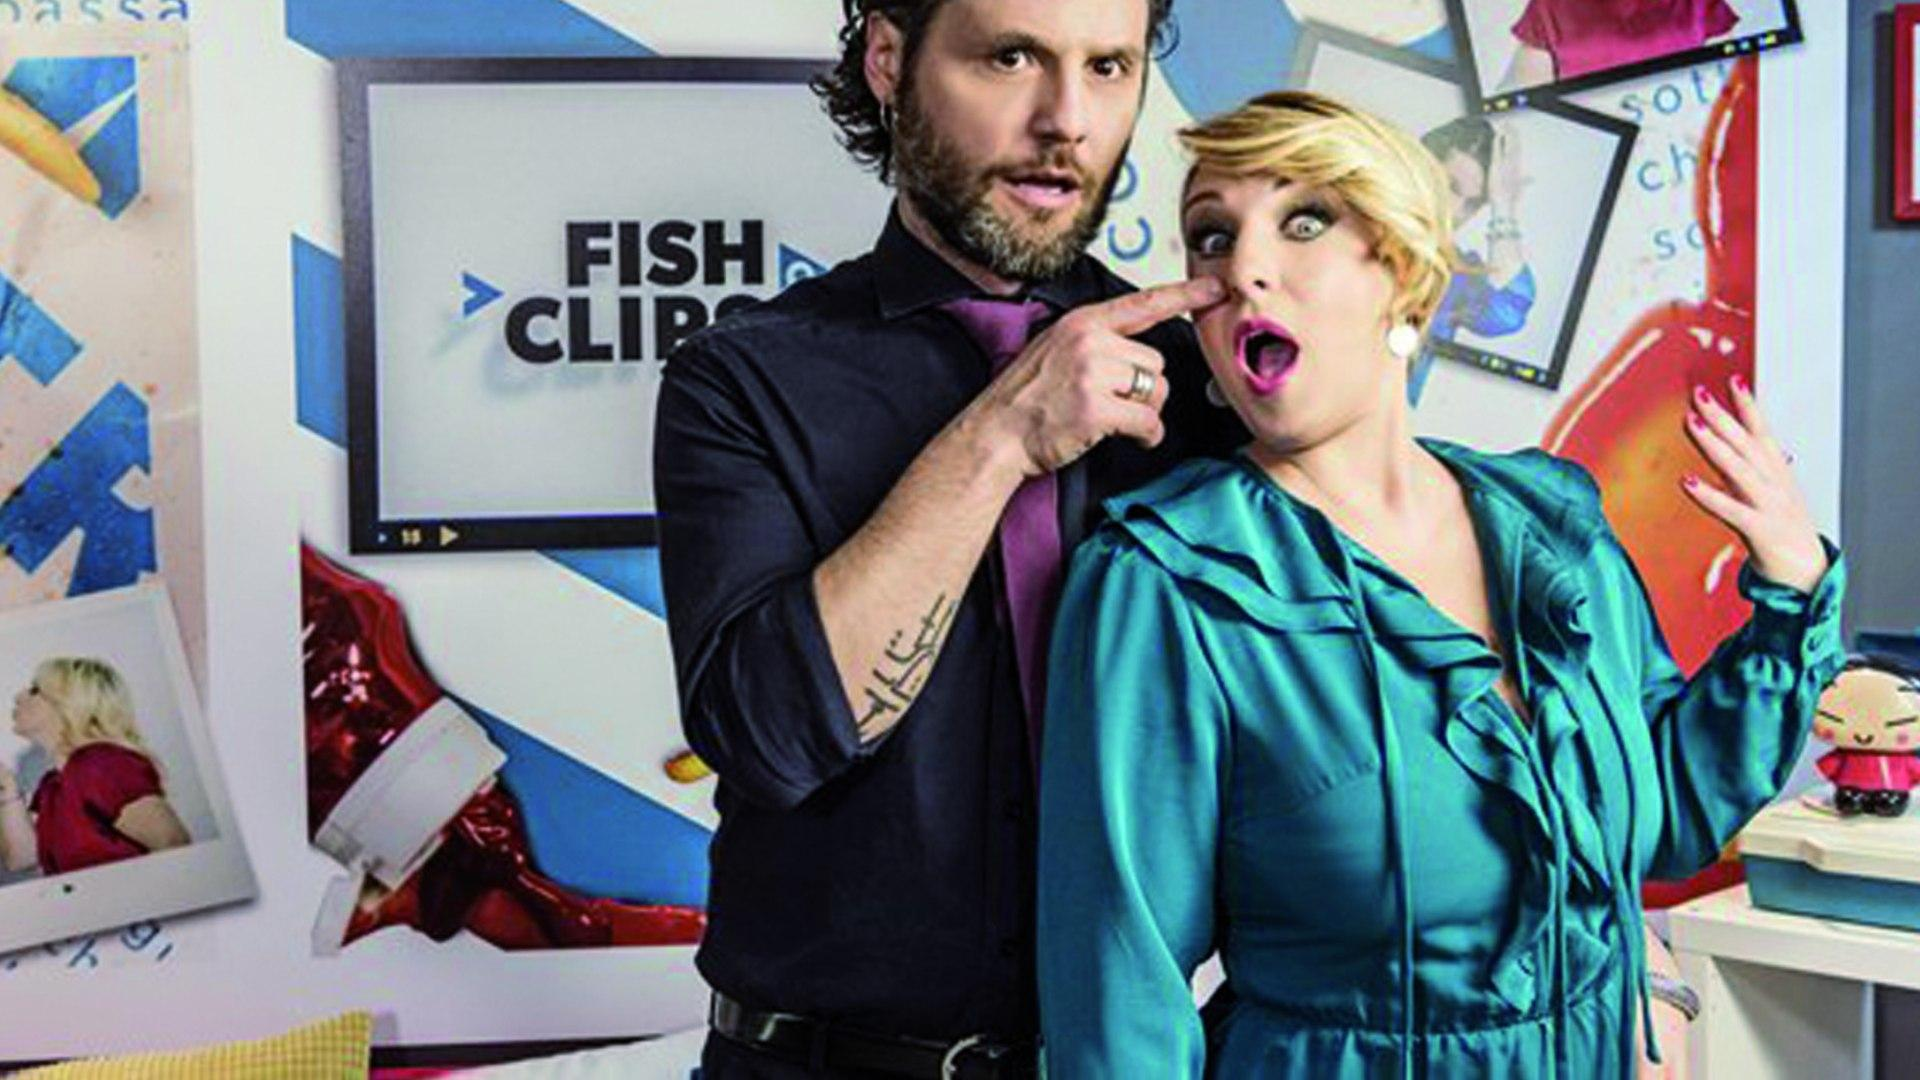 Comedy Central Fish & Clips